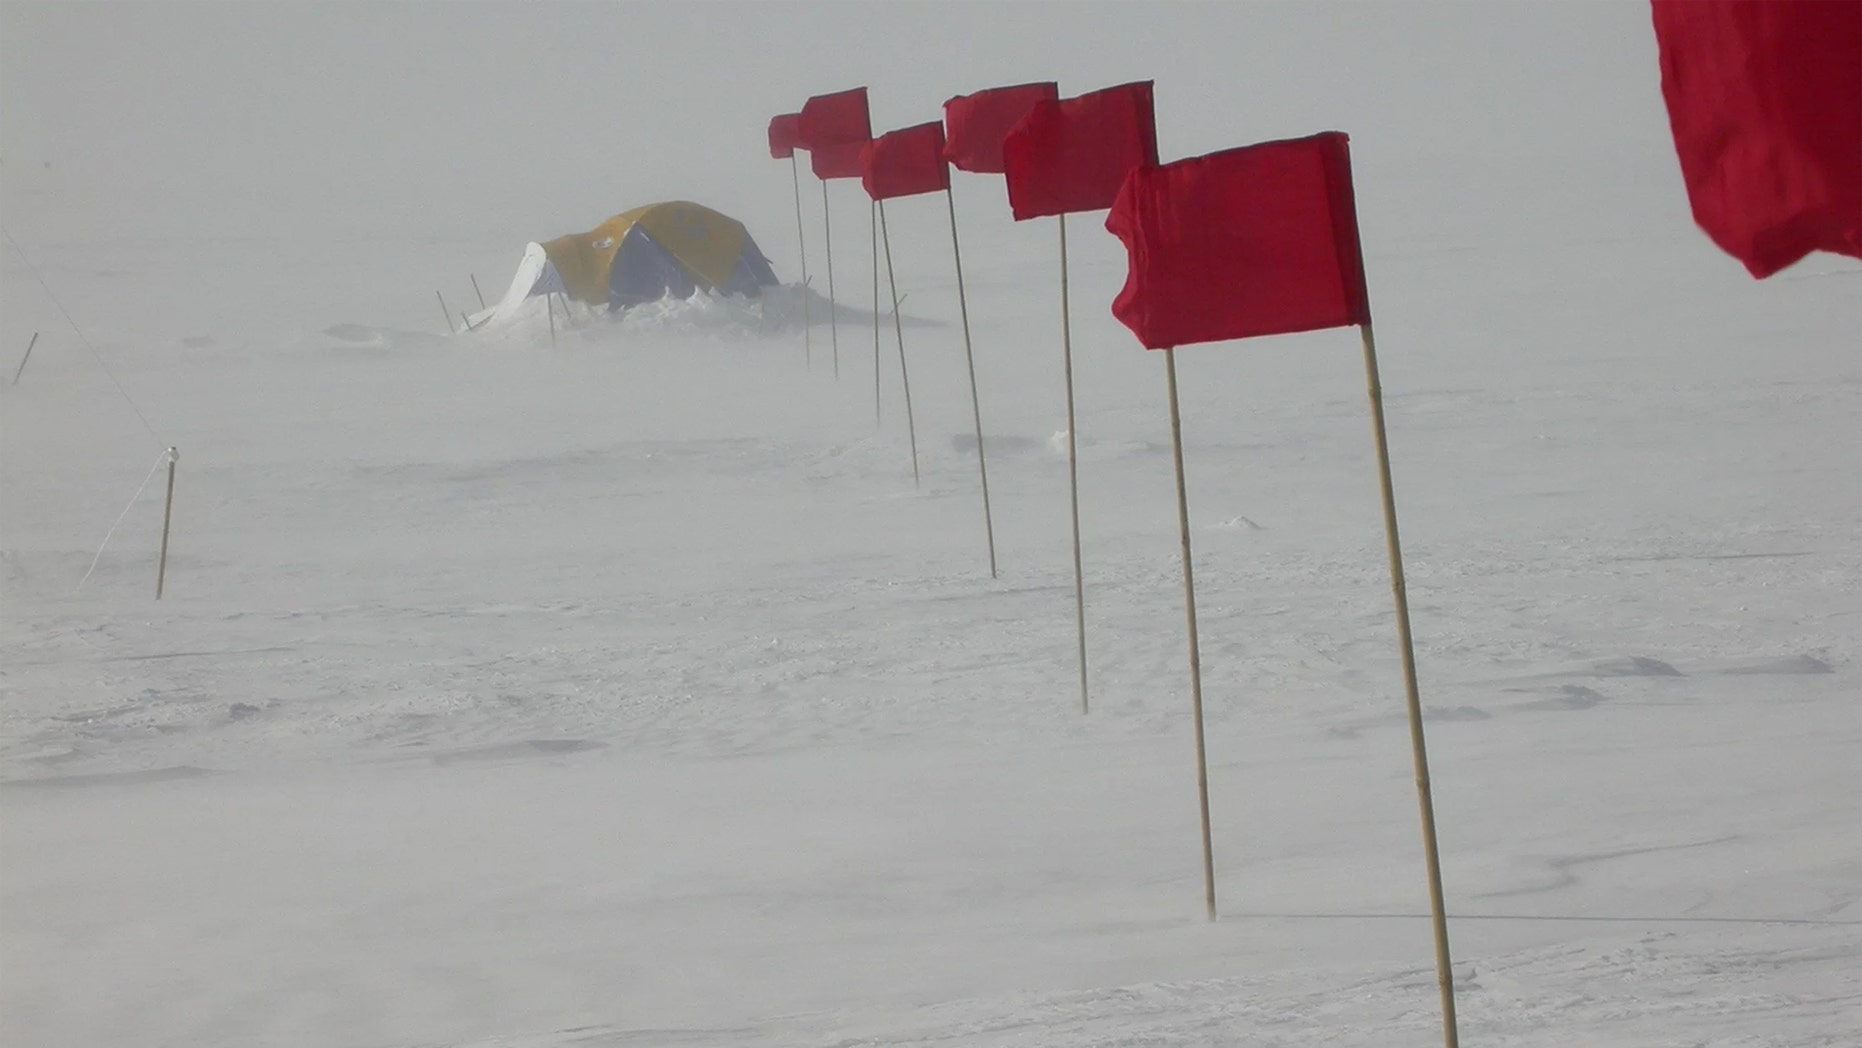 Summer at Vostok Station in Antarctica is still plenty cold, but winter atop the East Antarctic Plateau is as cold as it gets on Earth. Credit: Ted Scambos, NSIDC/University of Colorado-Boulder